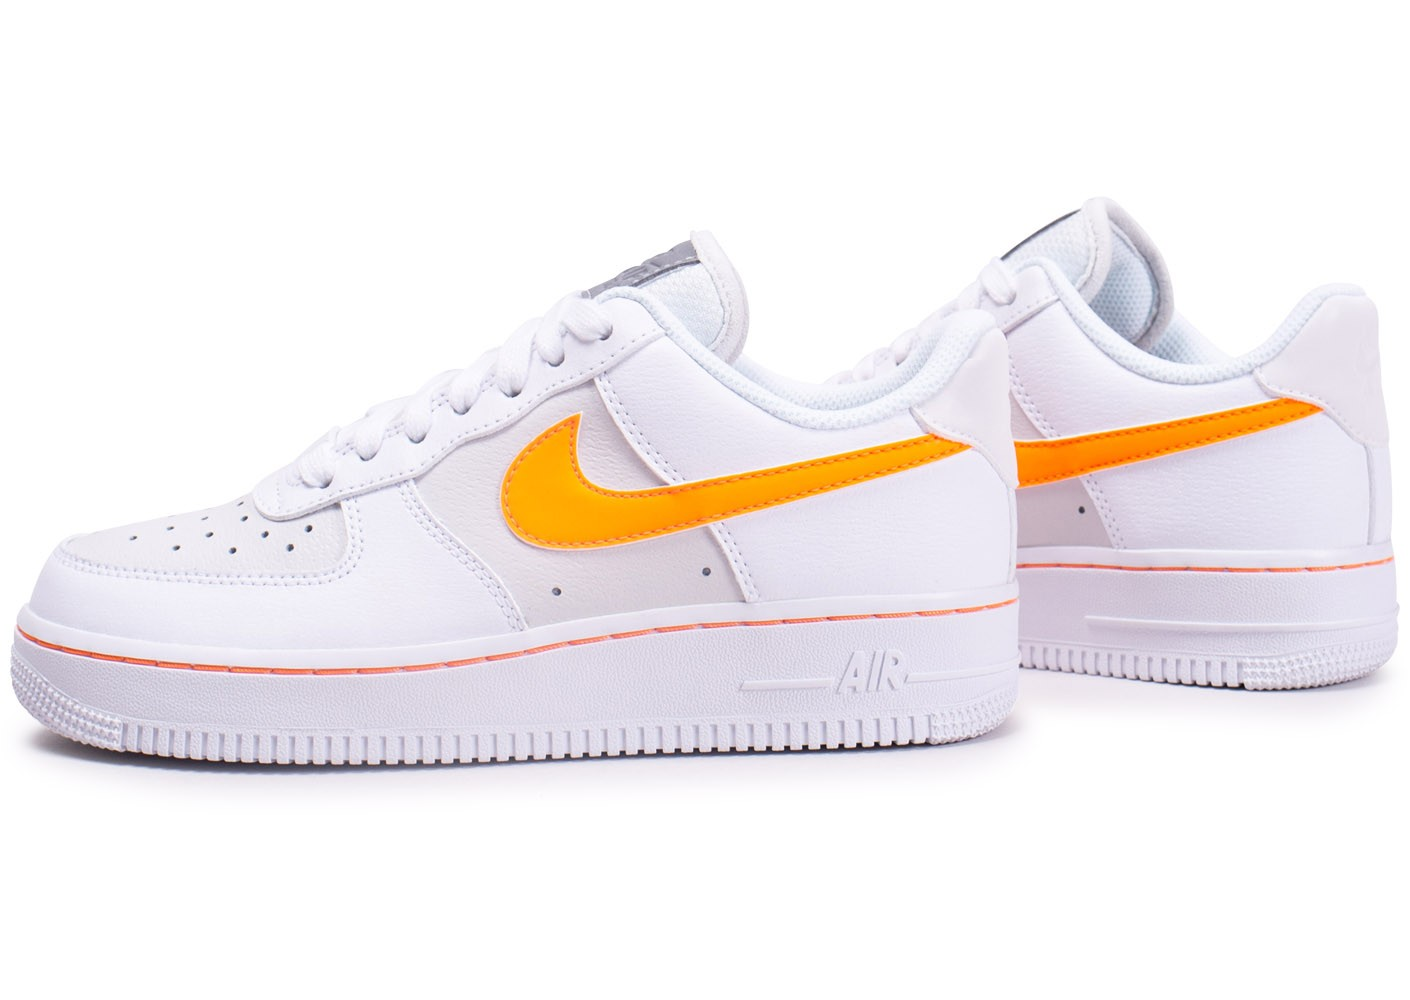 Nike Air Force One Blanche et Orange - Chaussures Baskets ...